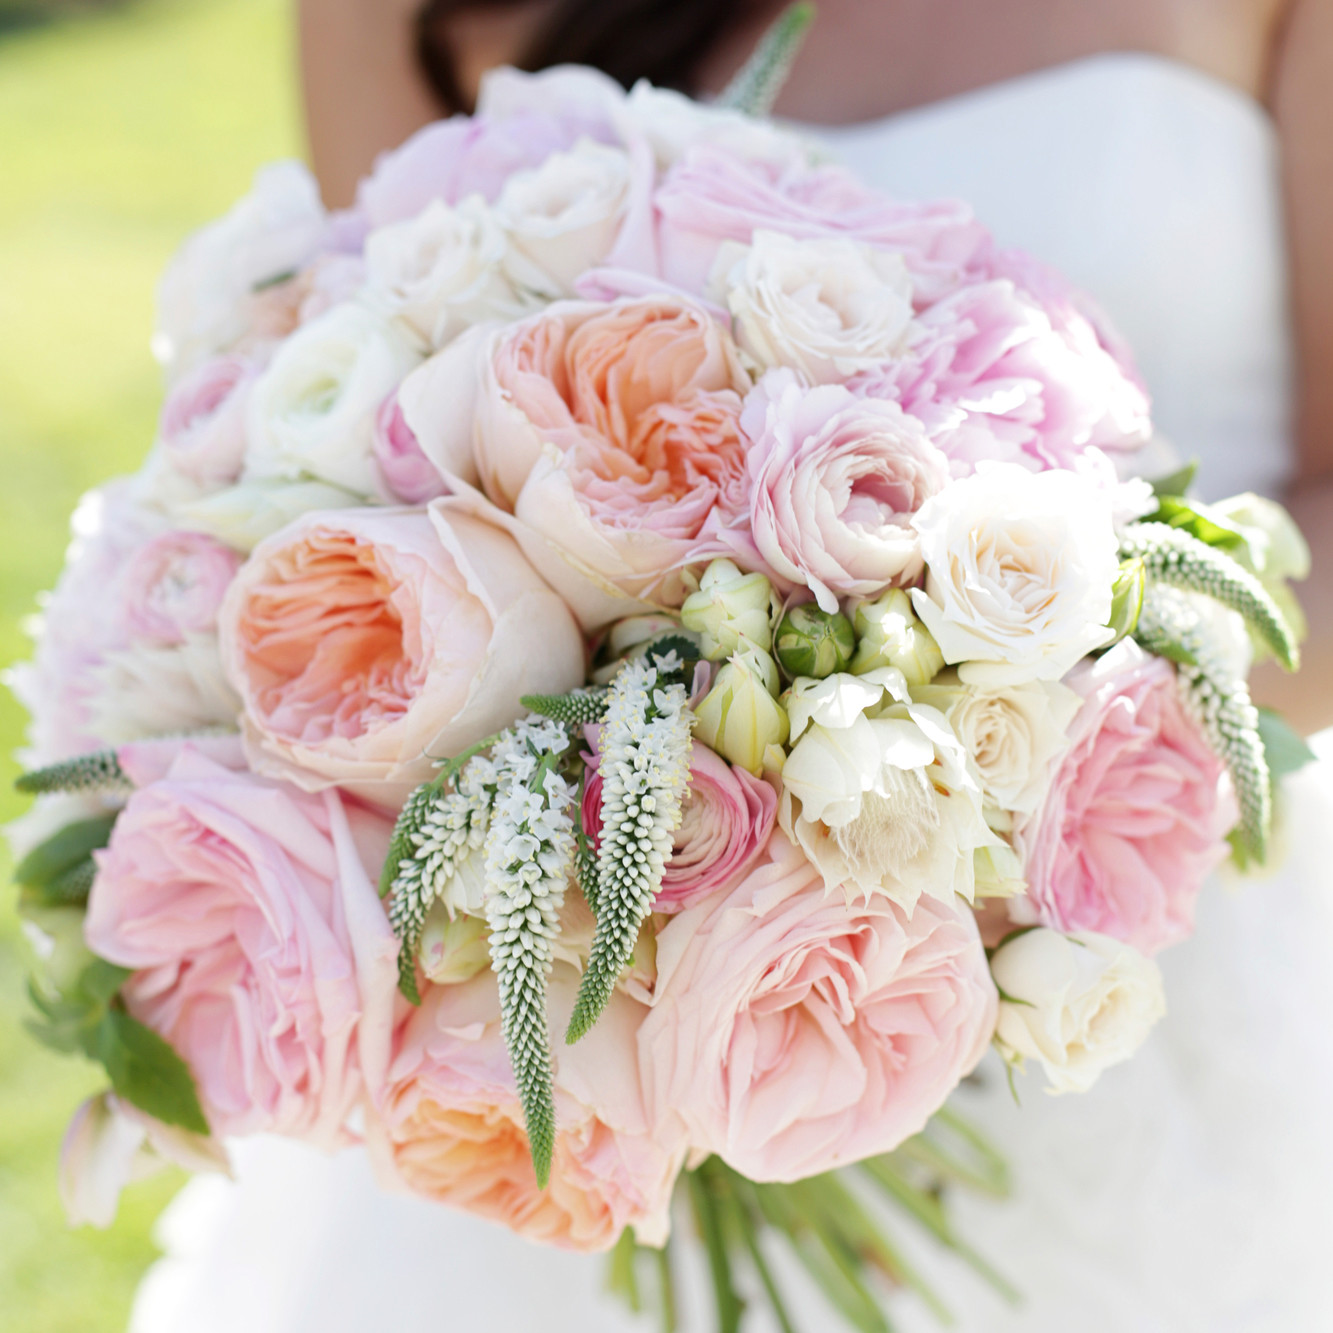 roses for wedding bouquets photo - 1